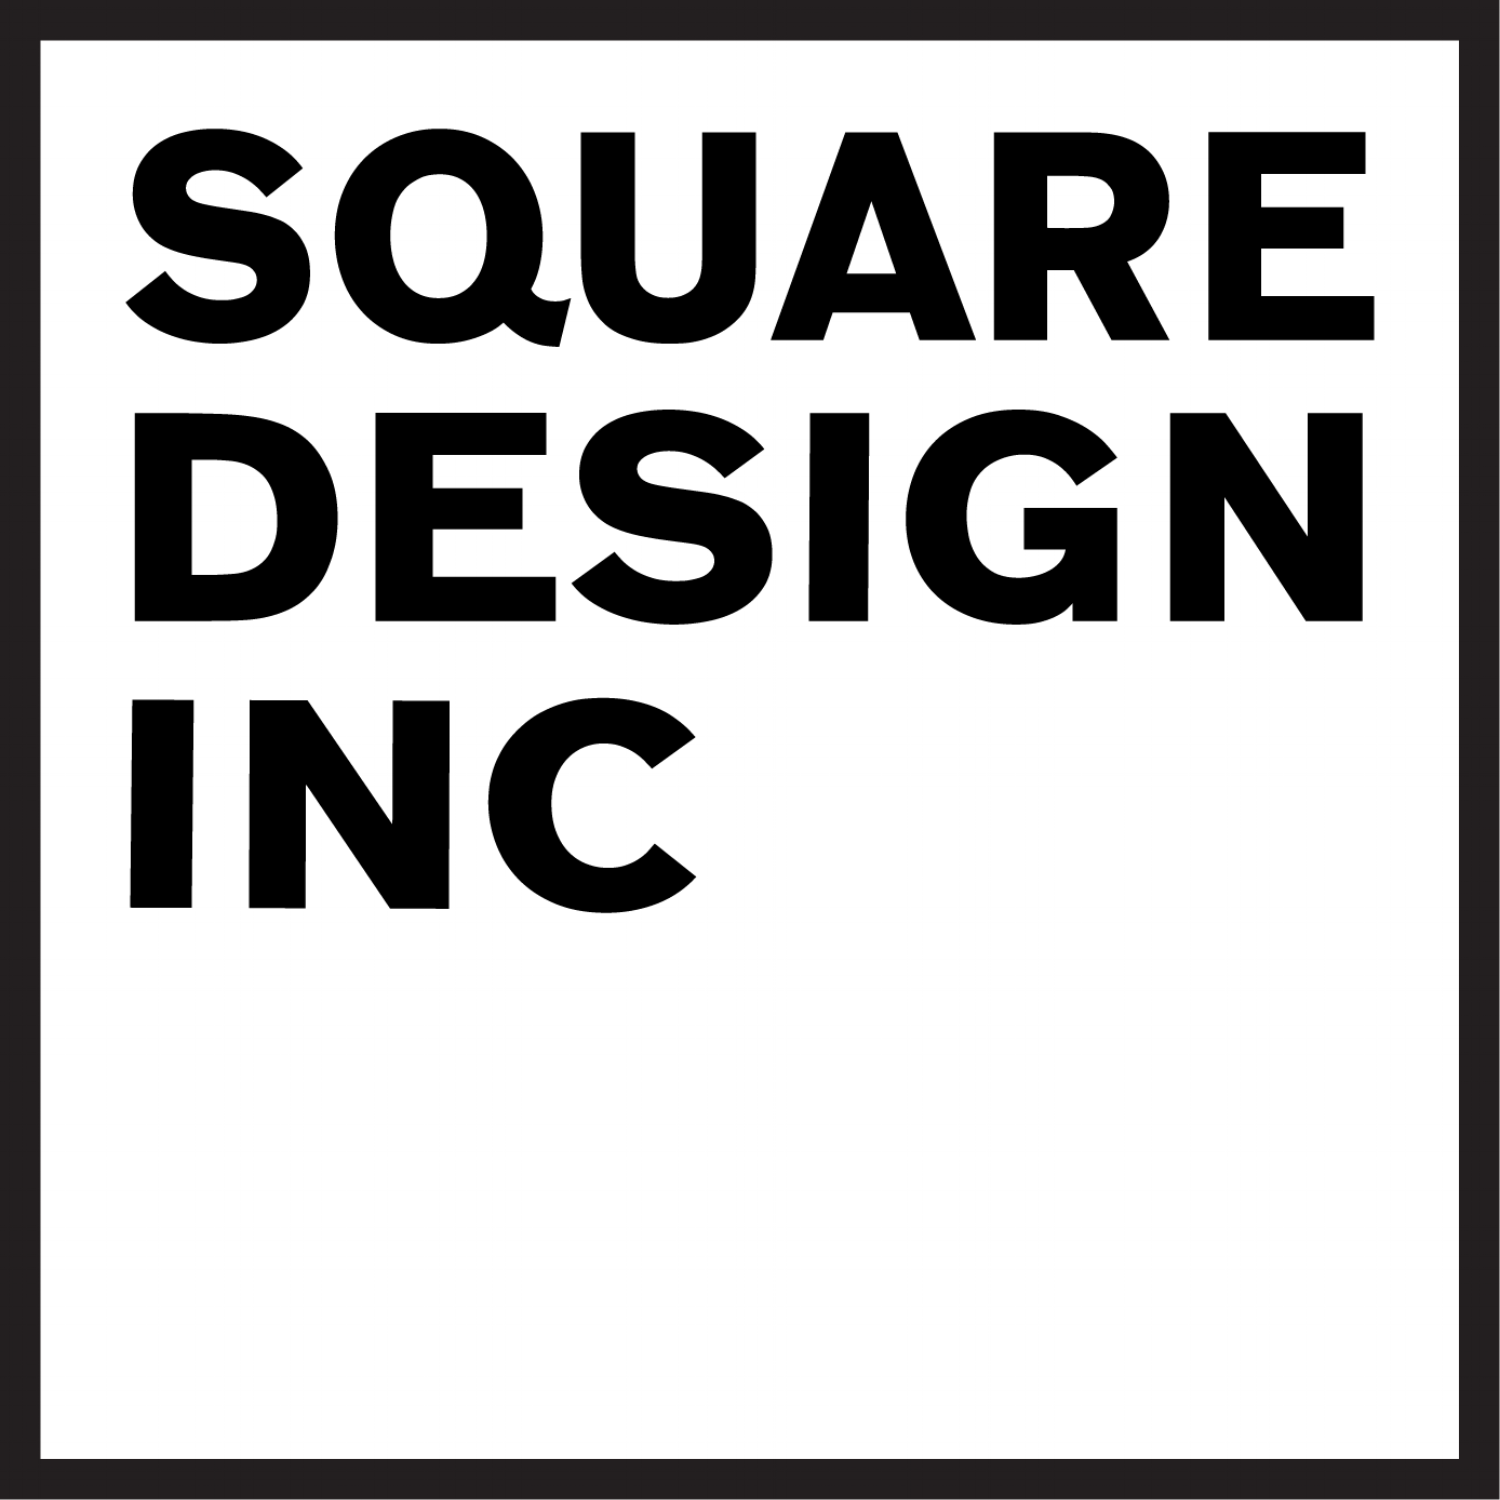 Square Design Inc